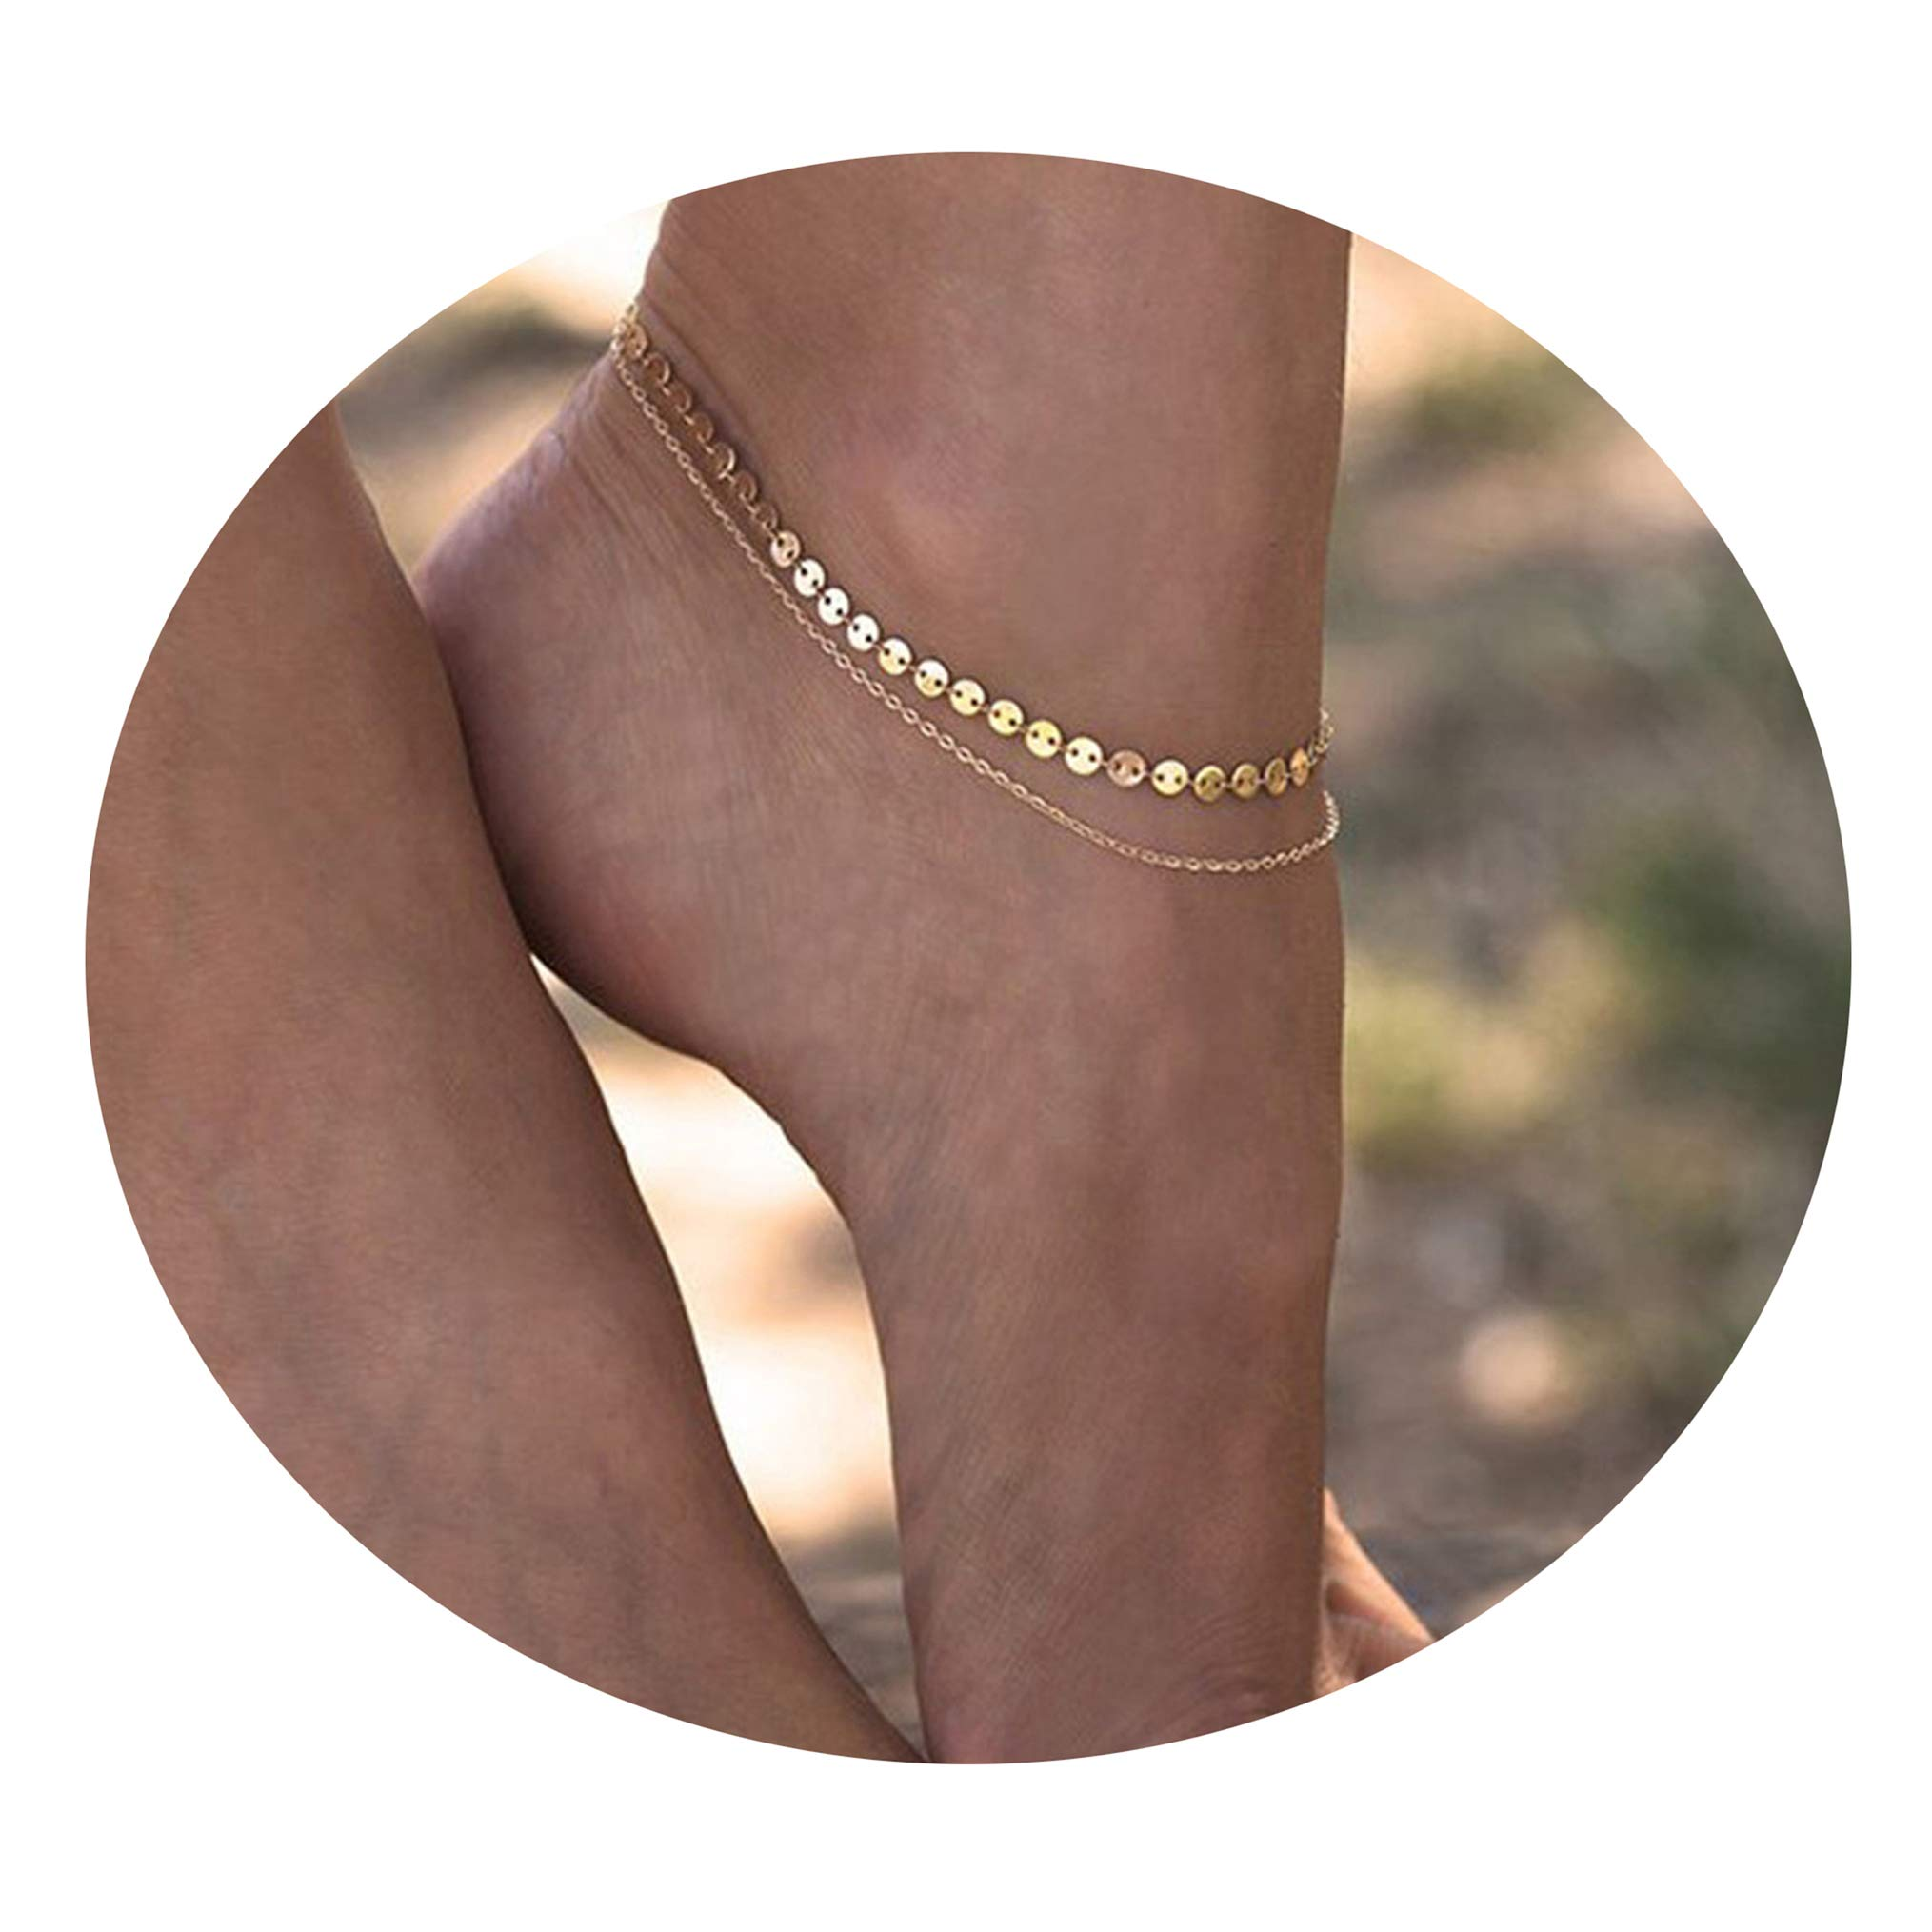 Women Dainty Anklet,14K Gold Plated Double Layered Cute Beads Chain Tassel Coin Disc Heart Summer Ankle Bracelet Boho Beach Foot Chain (Ank-7-Layered Coin GD) by Befettly